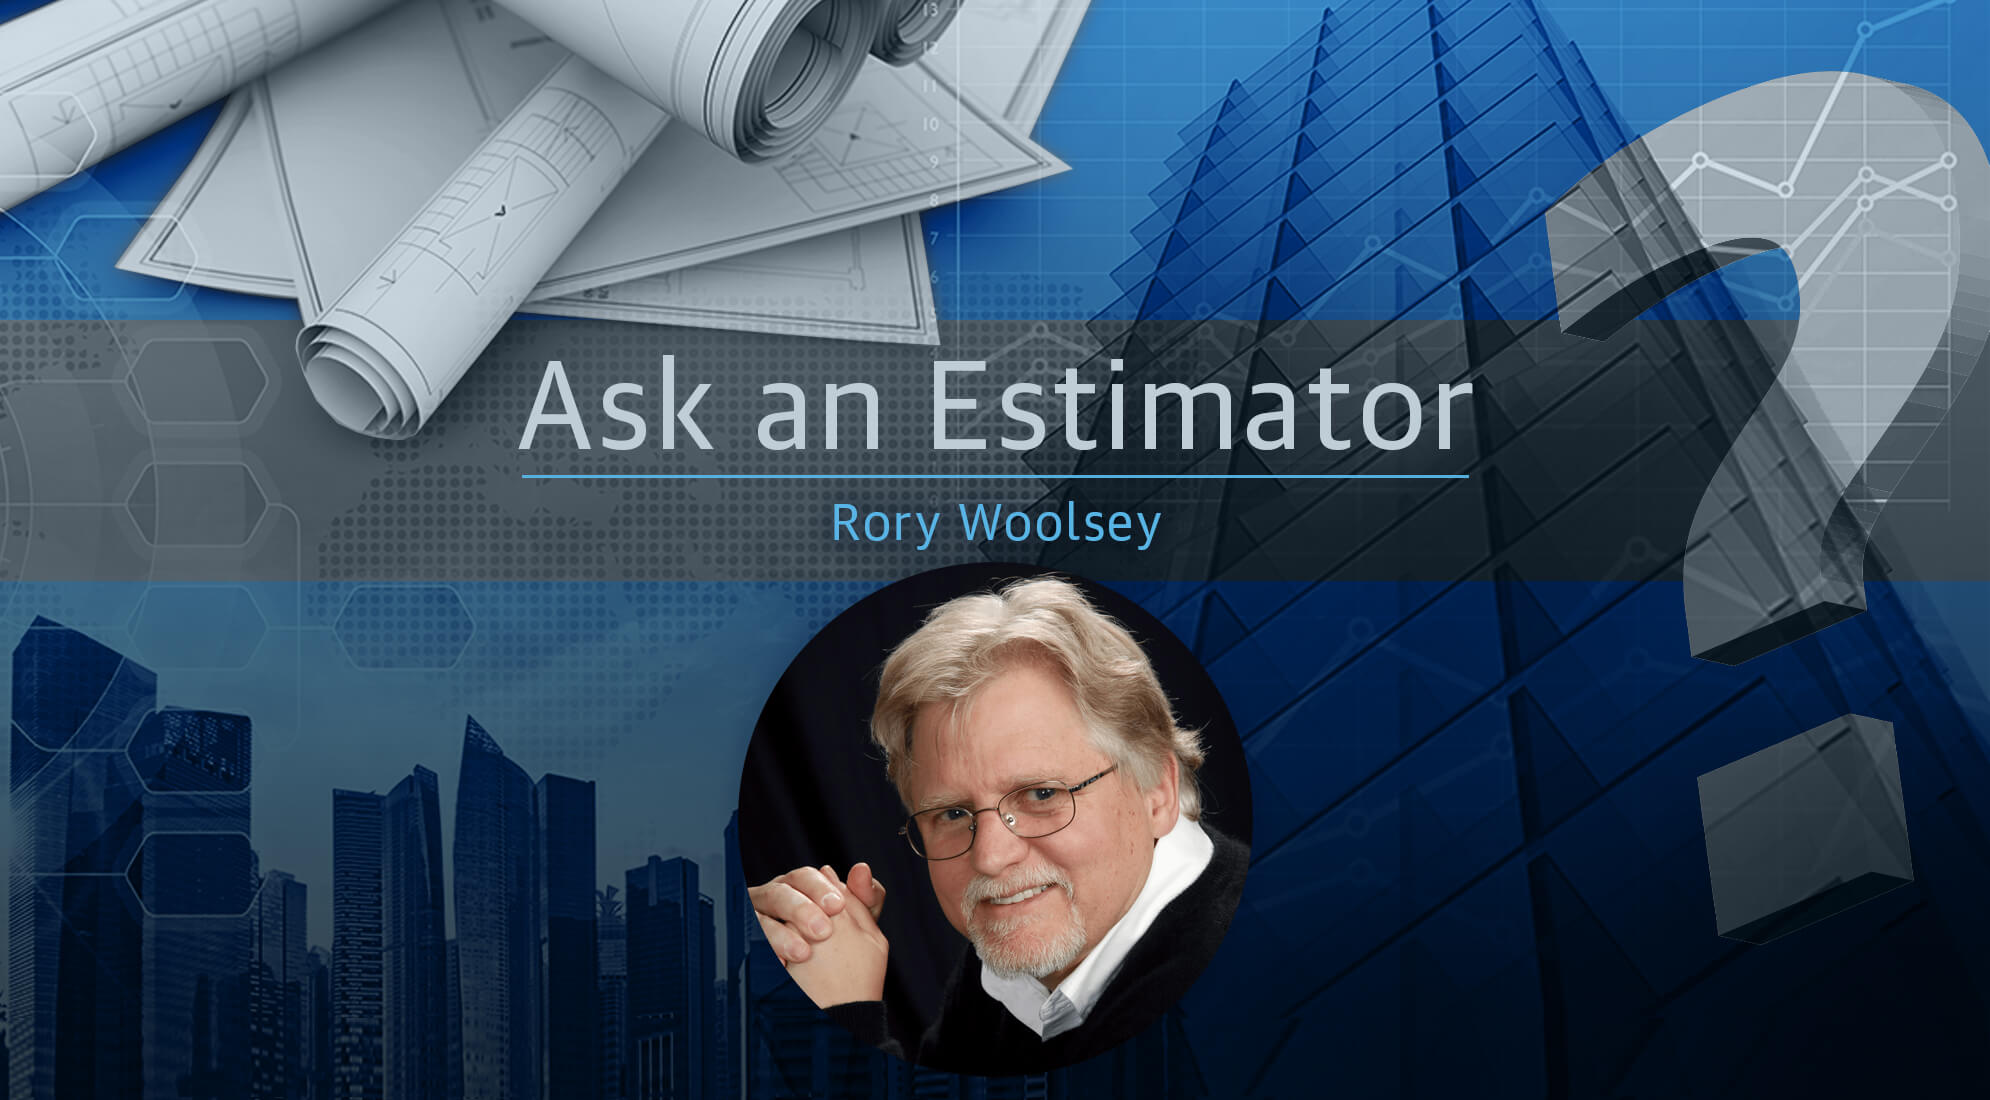 Ask an Estimator: Answers from Rory Woolsey